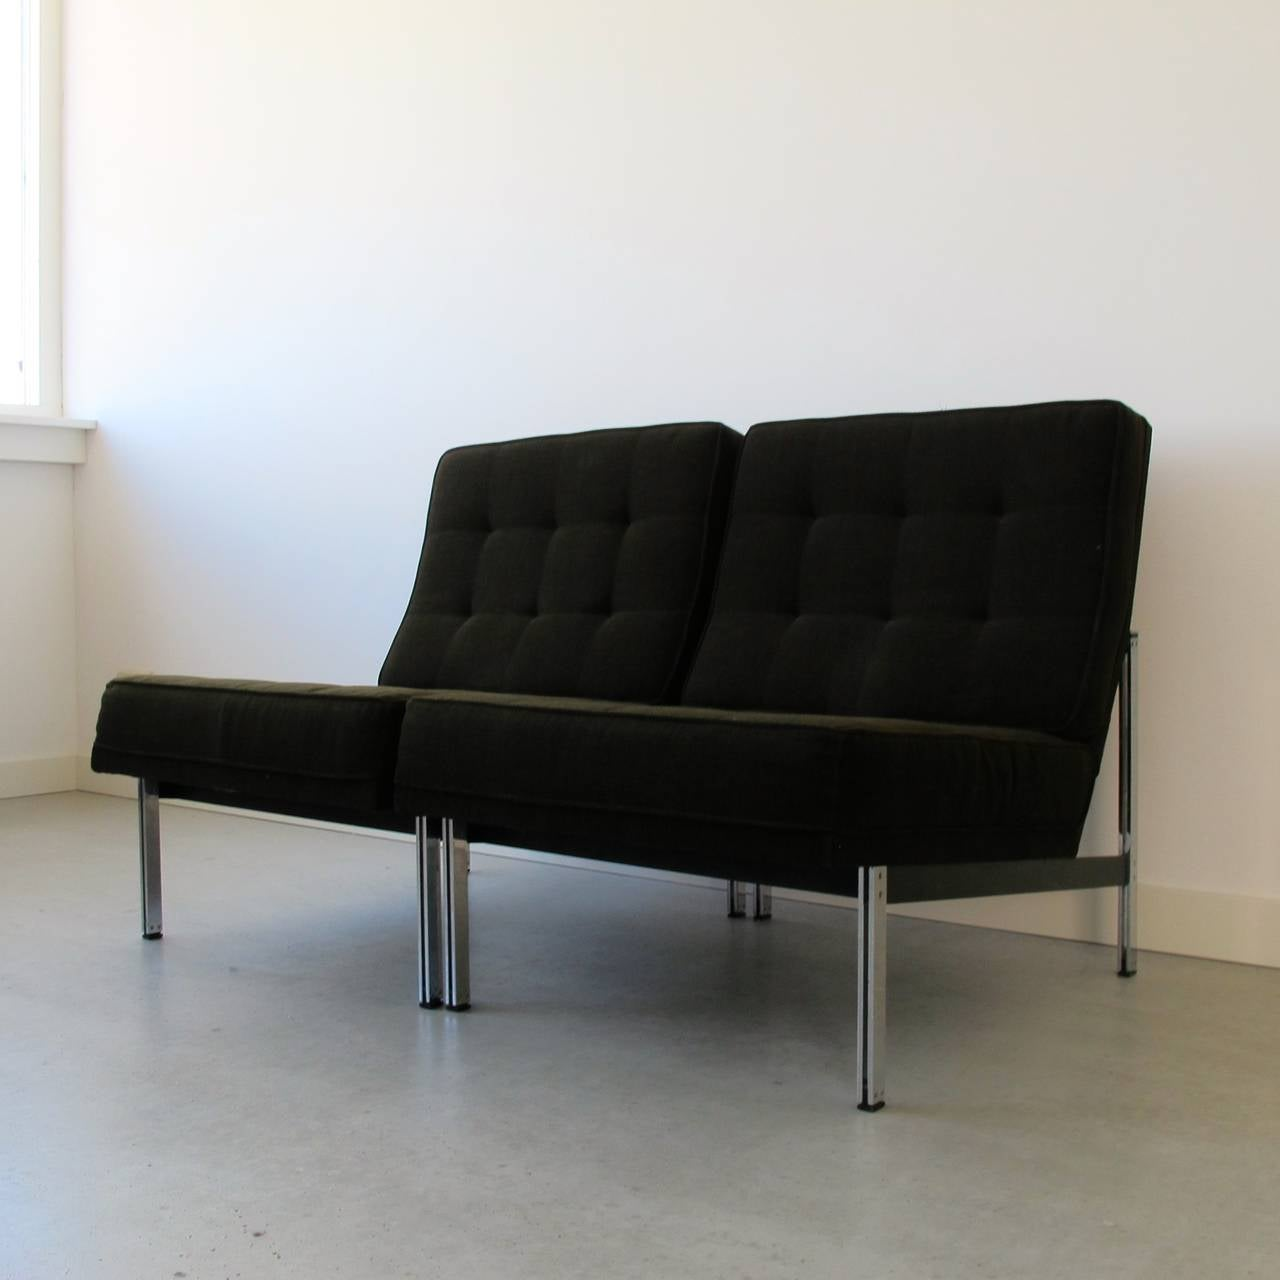 American Pair of Parallel Bar Lounge Chairs by Florence Knoll, circa 1955